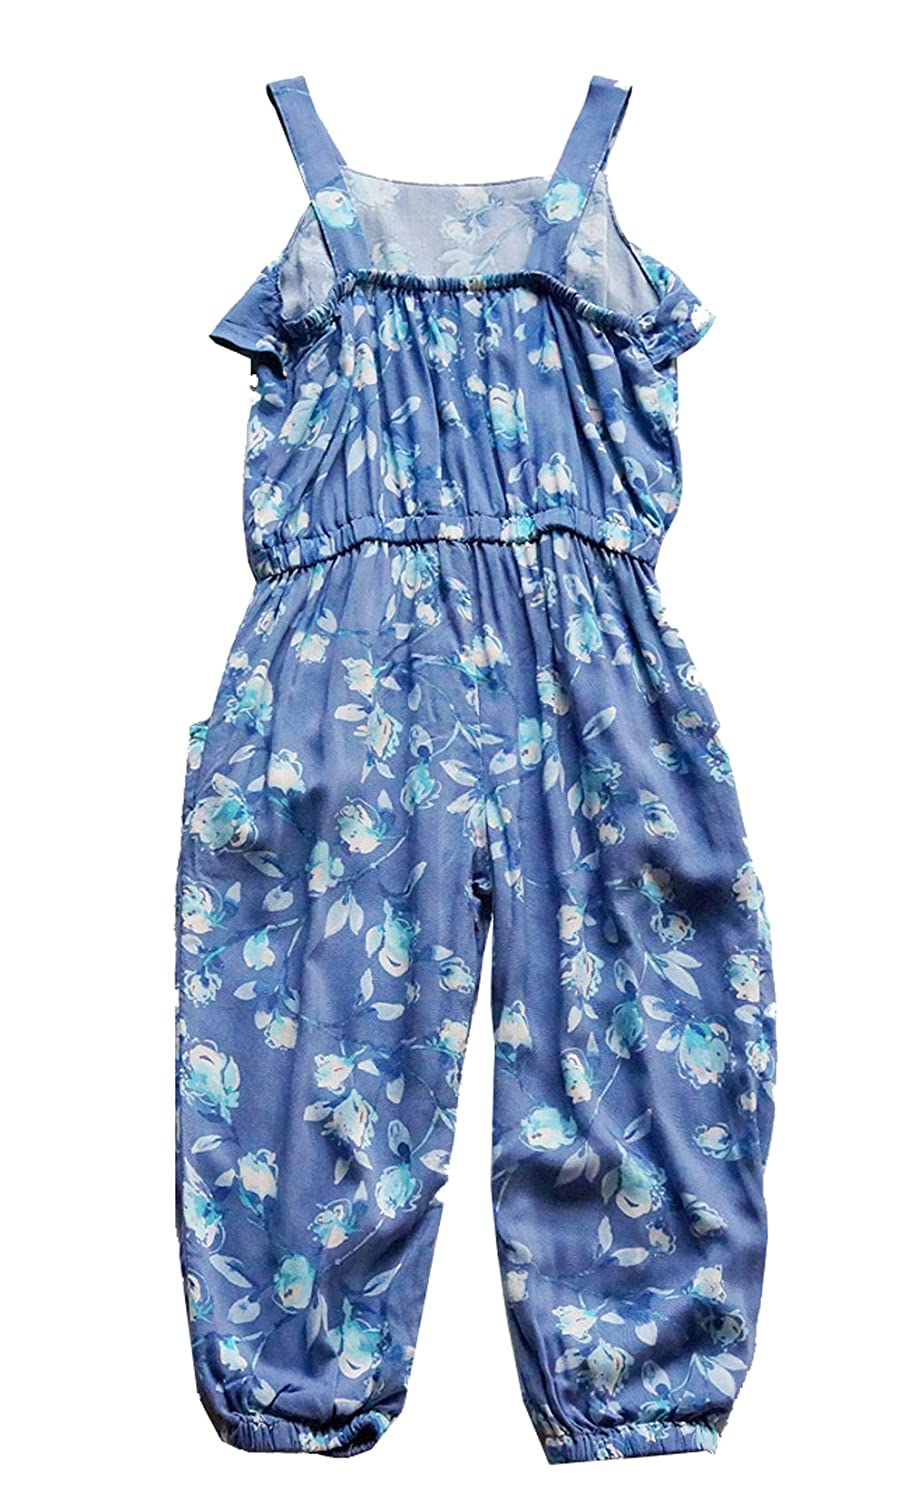 Fashion Baby Baby Little Girls Jumpsuit Romper Floral Printed Pant Outfit